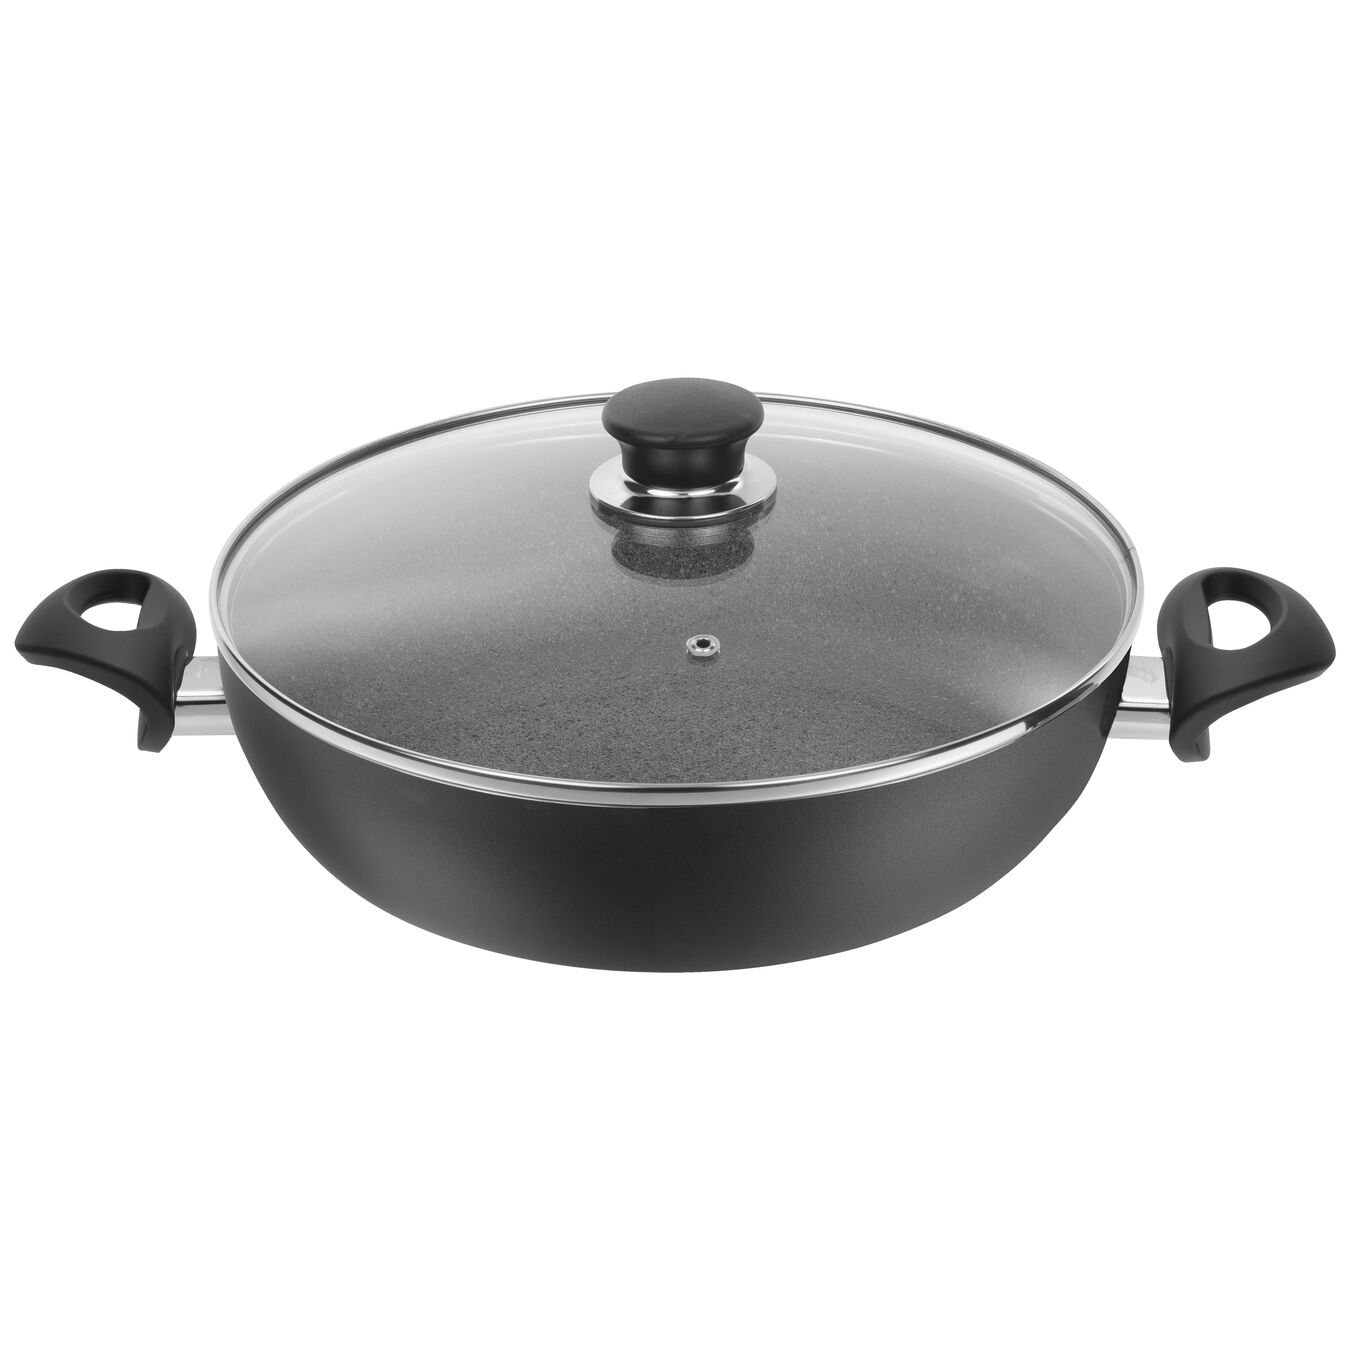 0.1 ml Aluminum round Saucier and sauteuse with lid, grey,,large 1